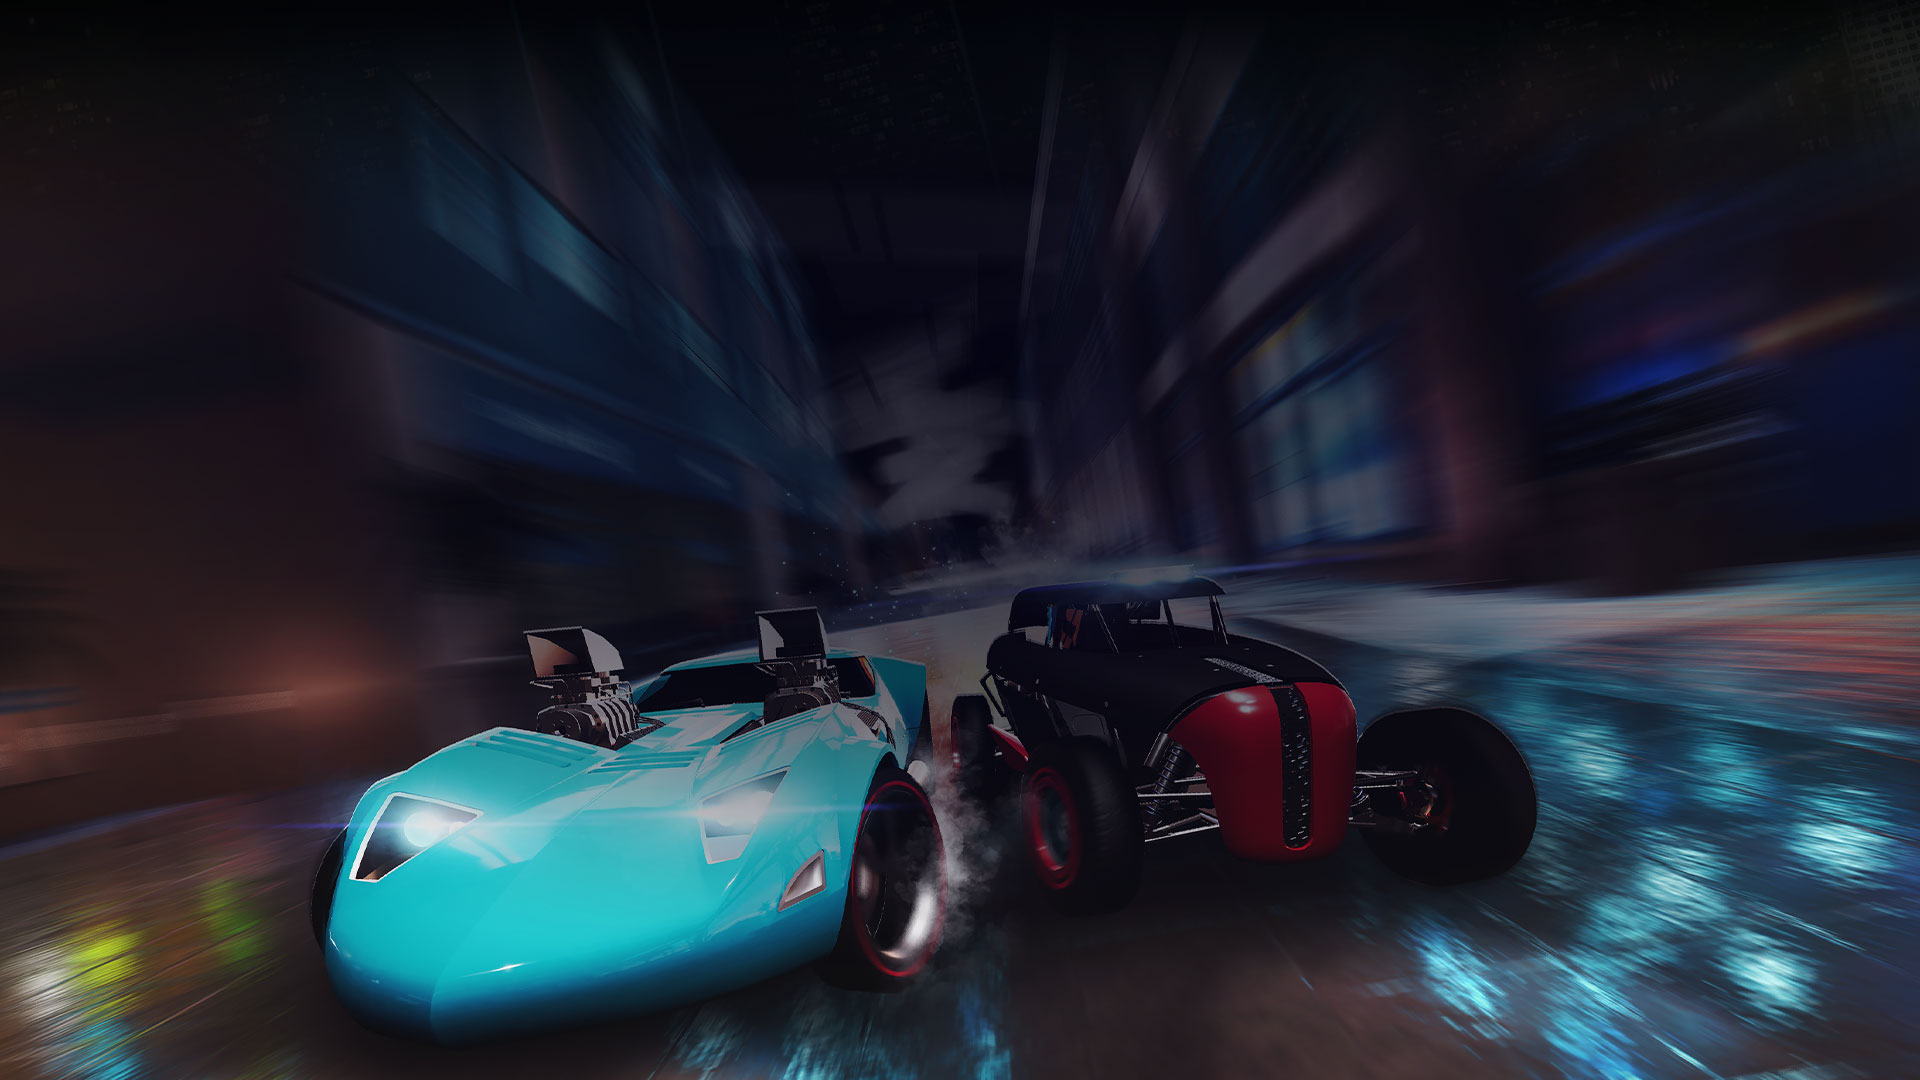 Two cars racing down a street